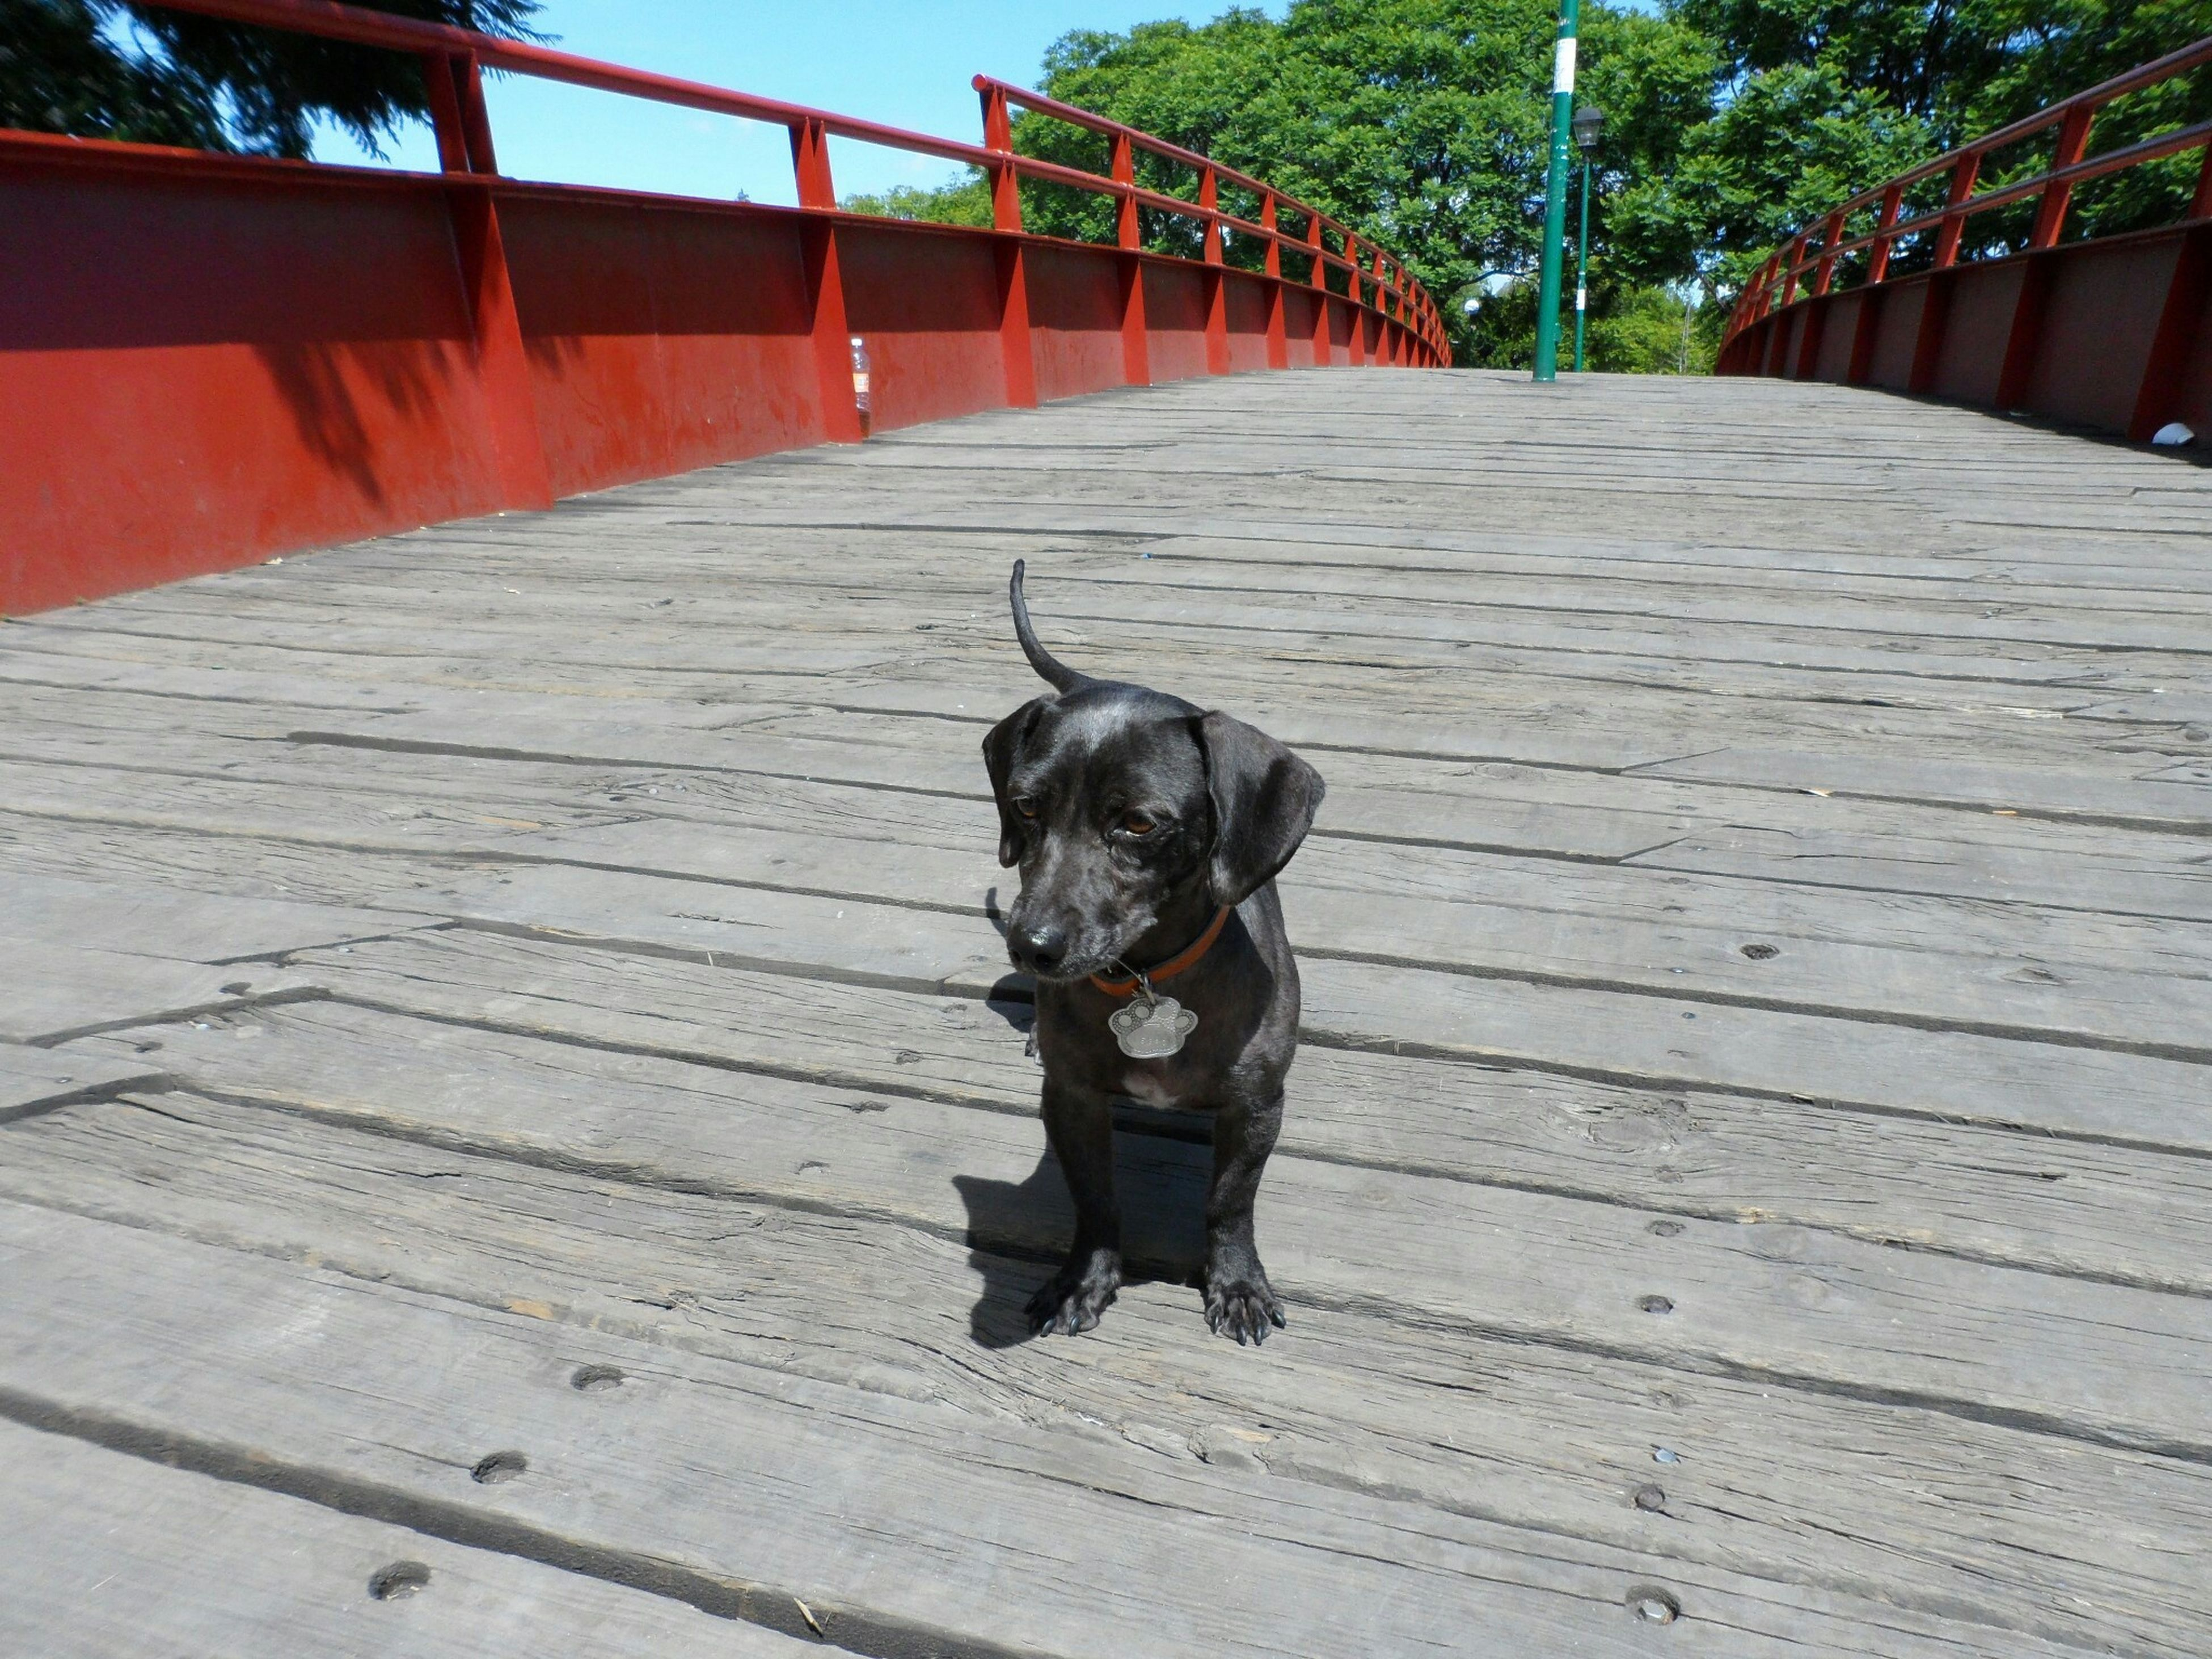 pets, domestic animals, one animal, animal themes, mammal, dog, looking at camera, sitting, wood - material, portrait, relaxation, full length, steps, high angle view, domestic cat, boardwalk, built structure, railing, sunlight, no people